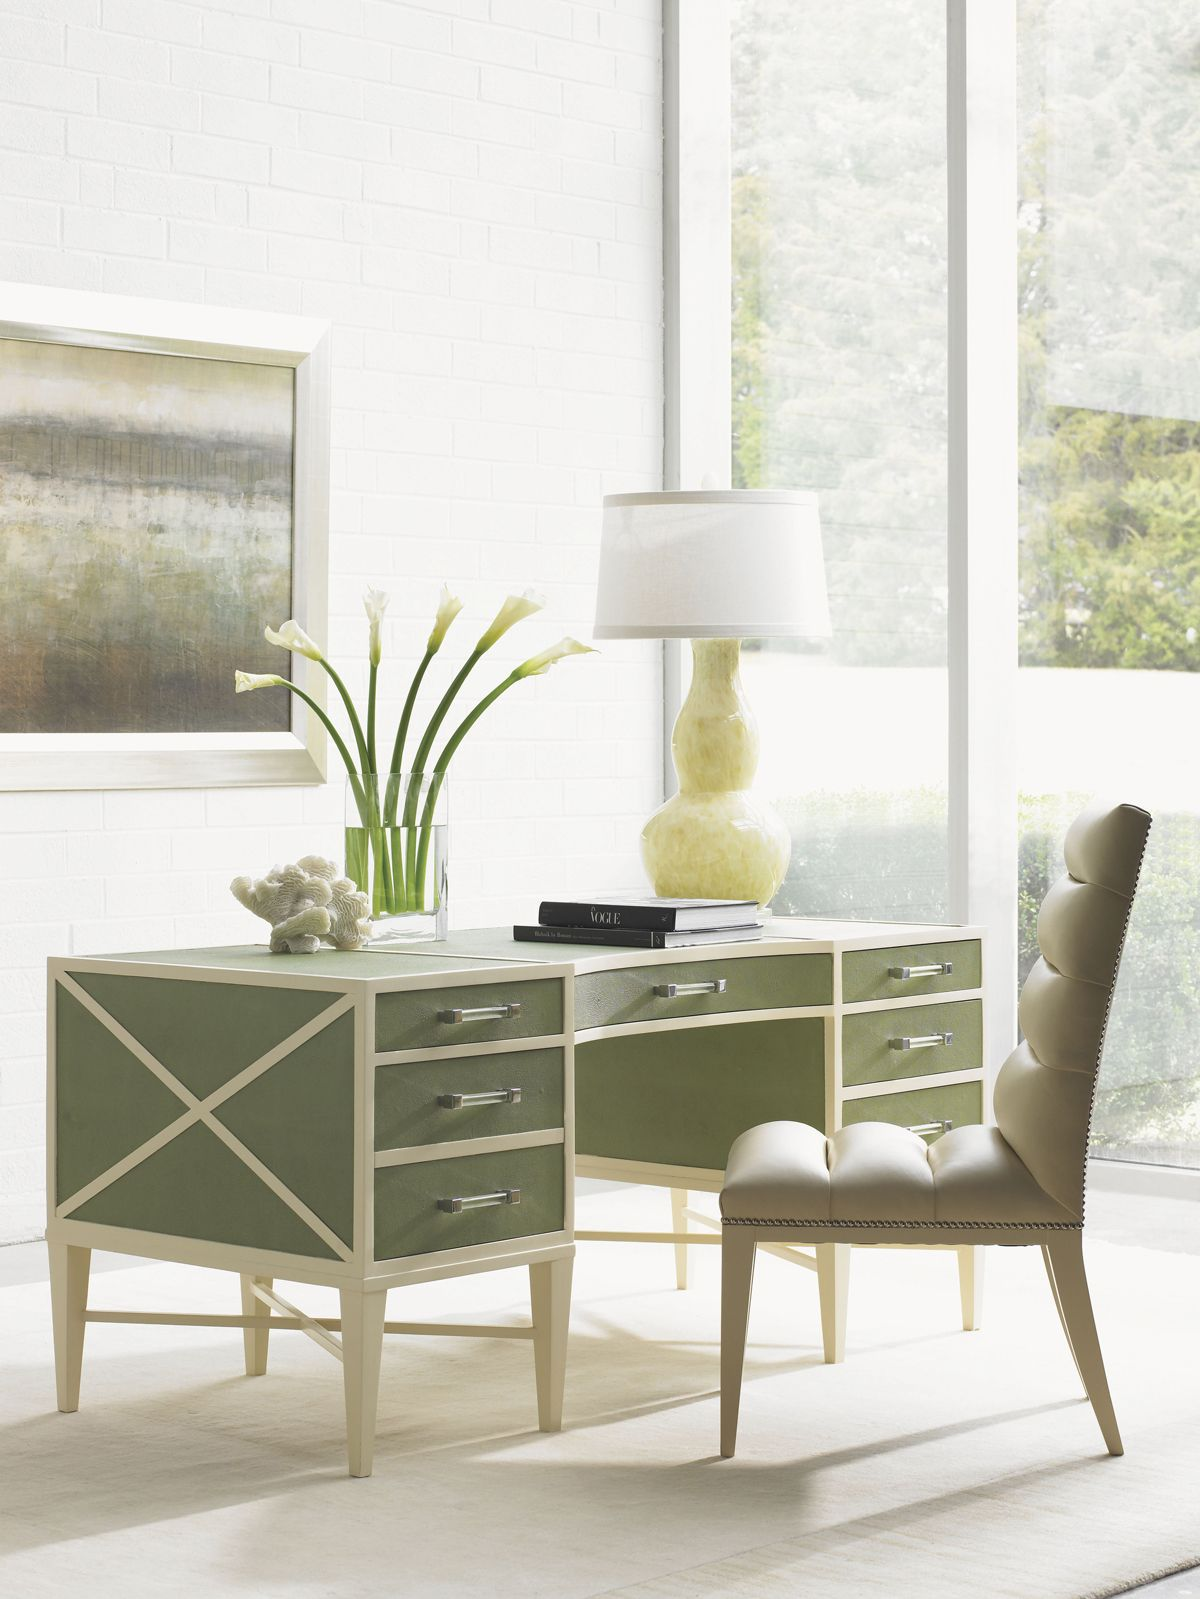 Sligh Studio Designs Sea Mist Writing Desk, available